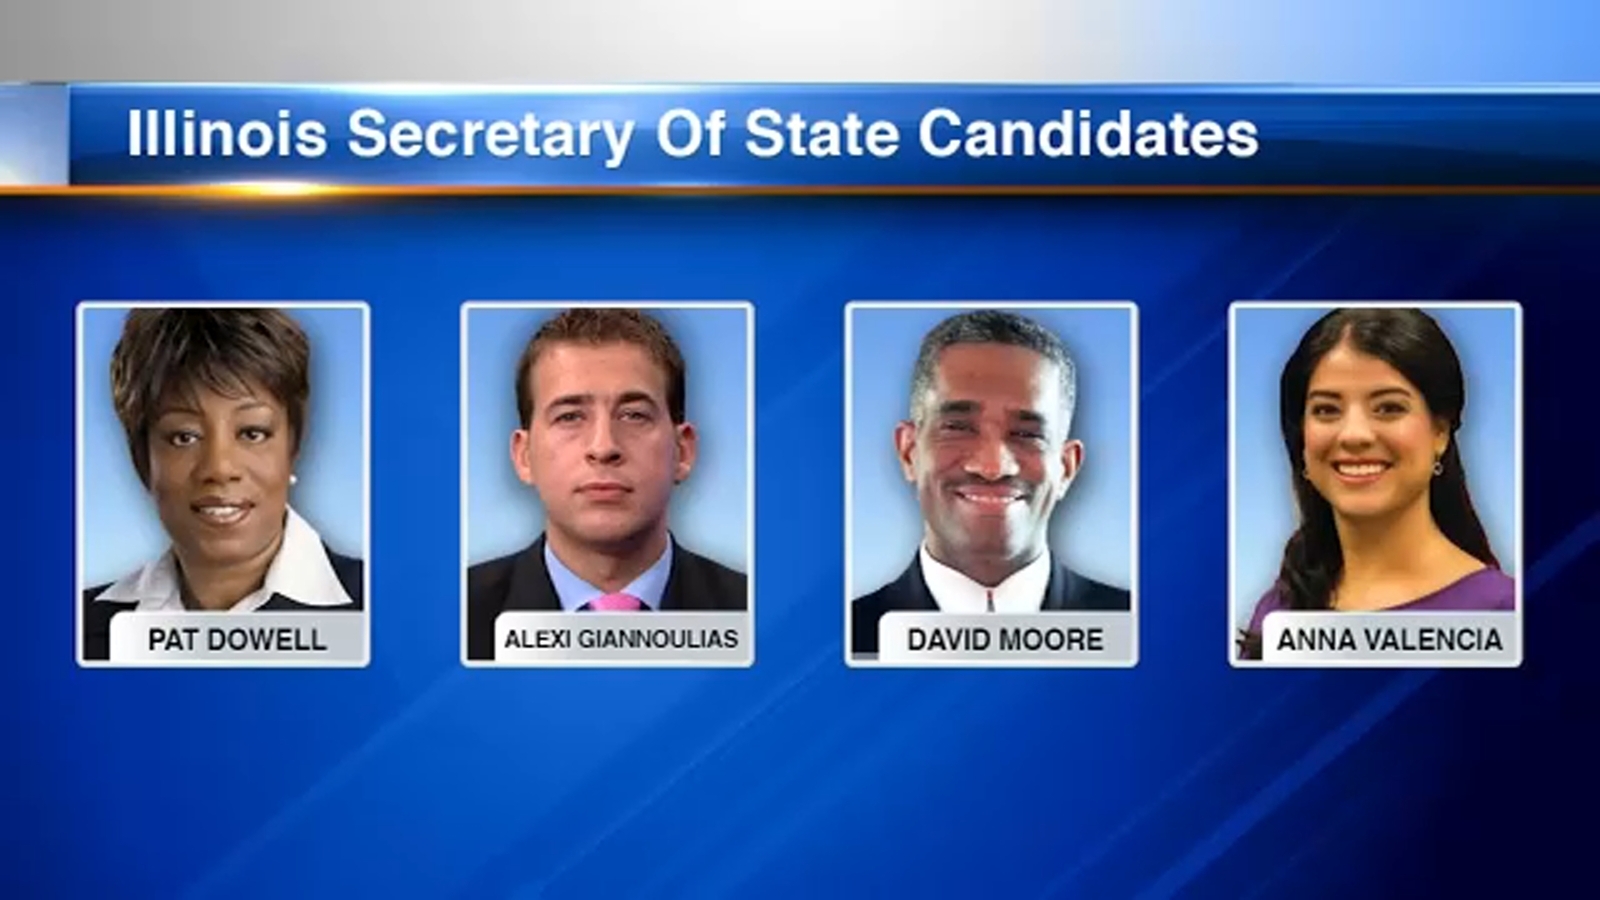 Secretary of State candidates make pitch at Illinois State Fair; Jesse White not ready to make endorsement just yet